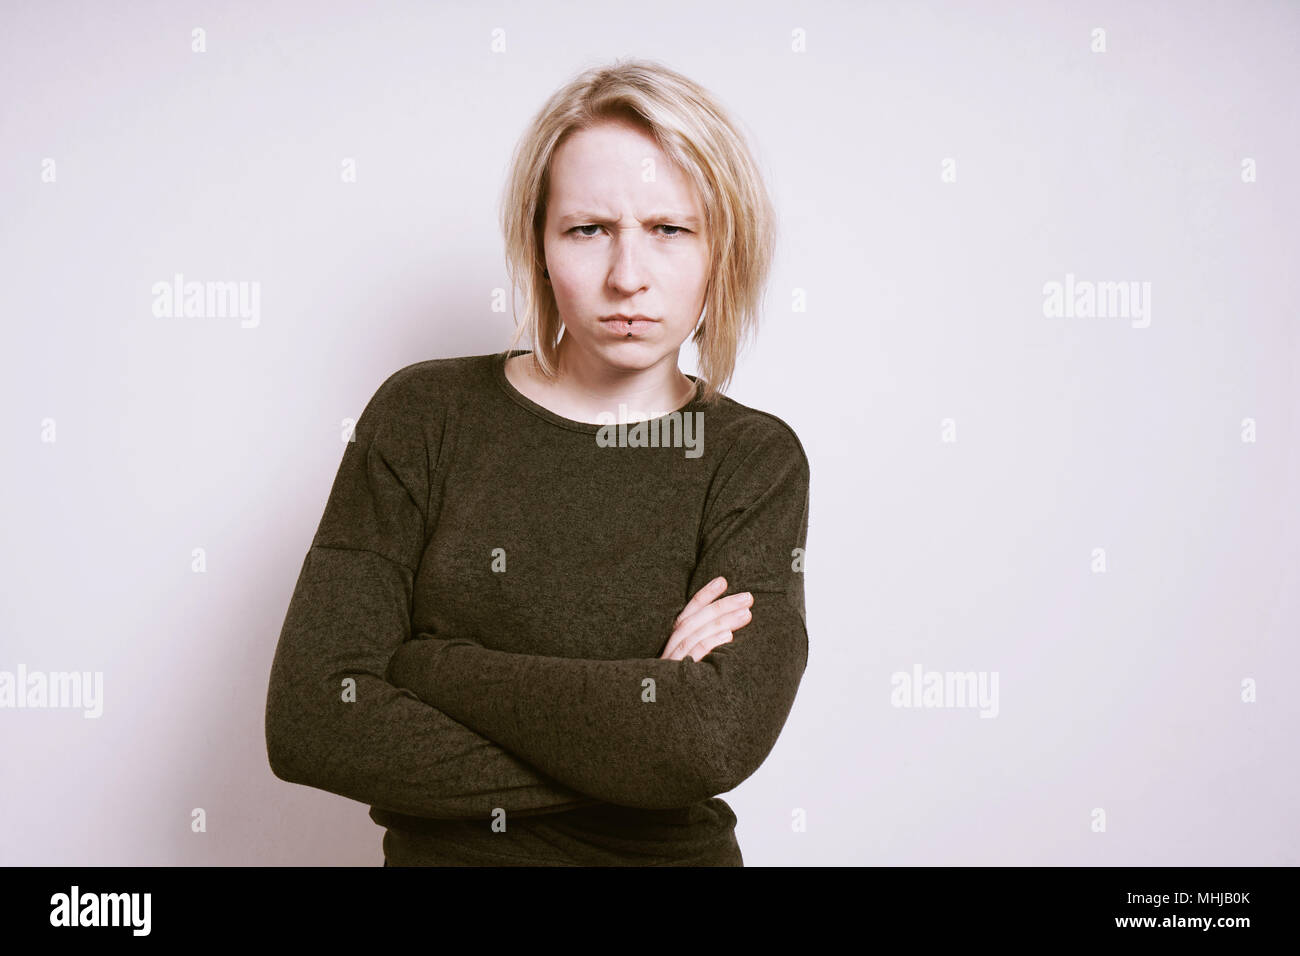 Angry Young Woman Frowning With Arms Crossed Negative Emotion Concept Copy Space